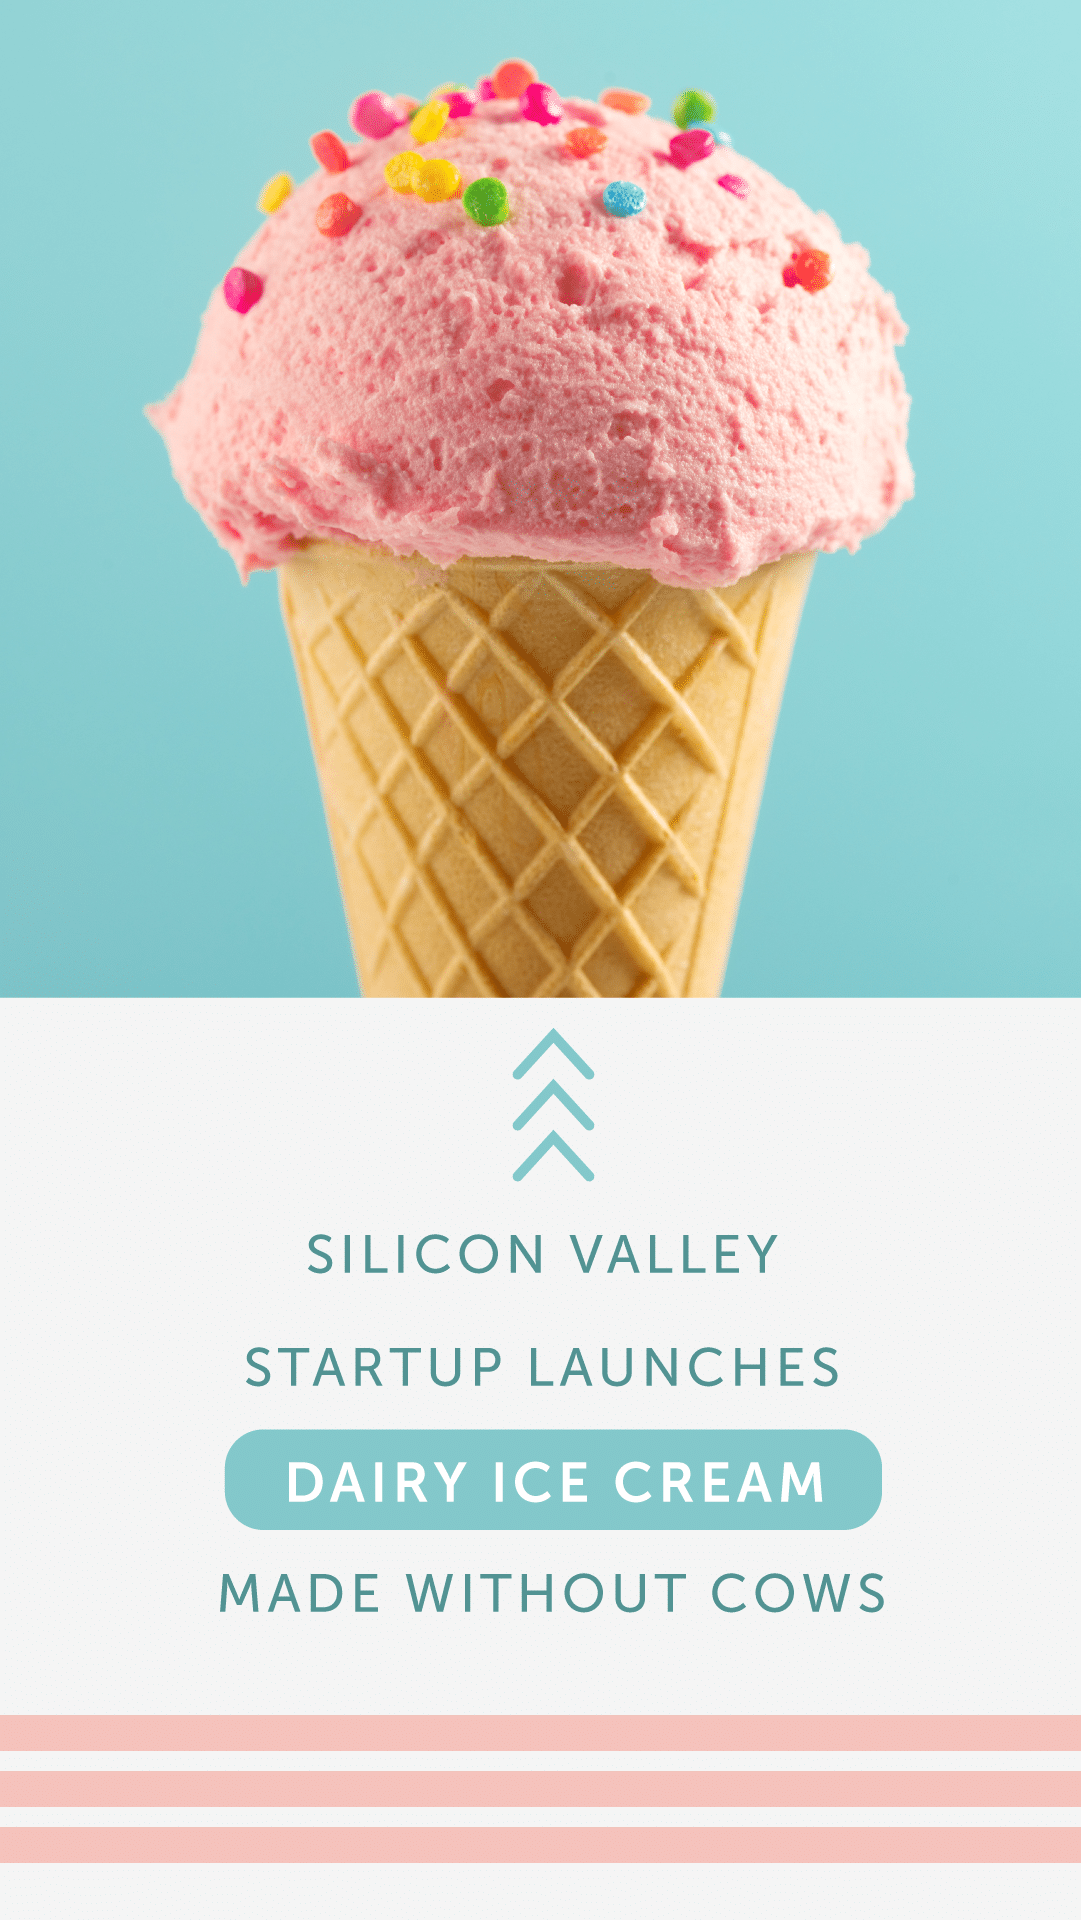 Silicon Valley Startup Launches Dairy Ice Cream Made Without Cows